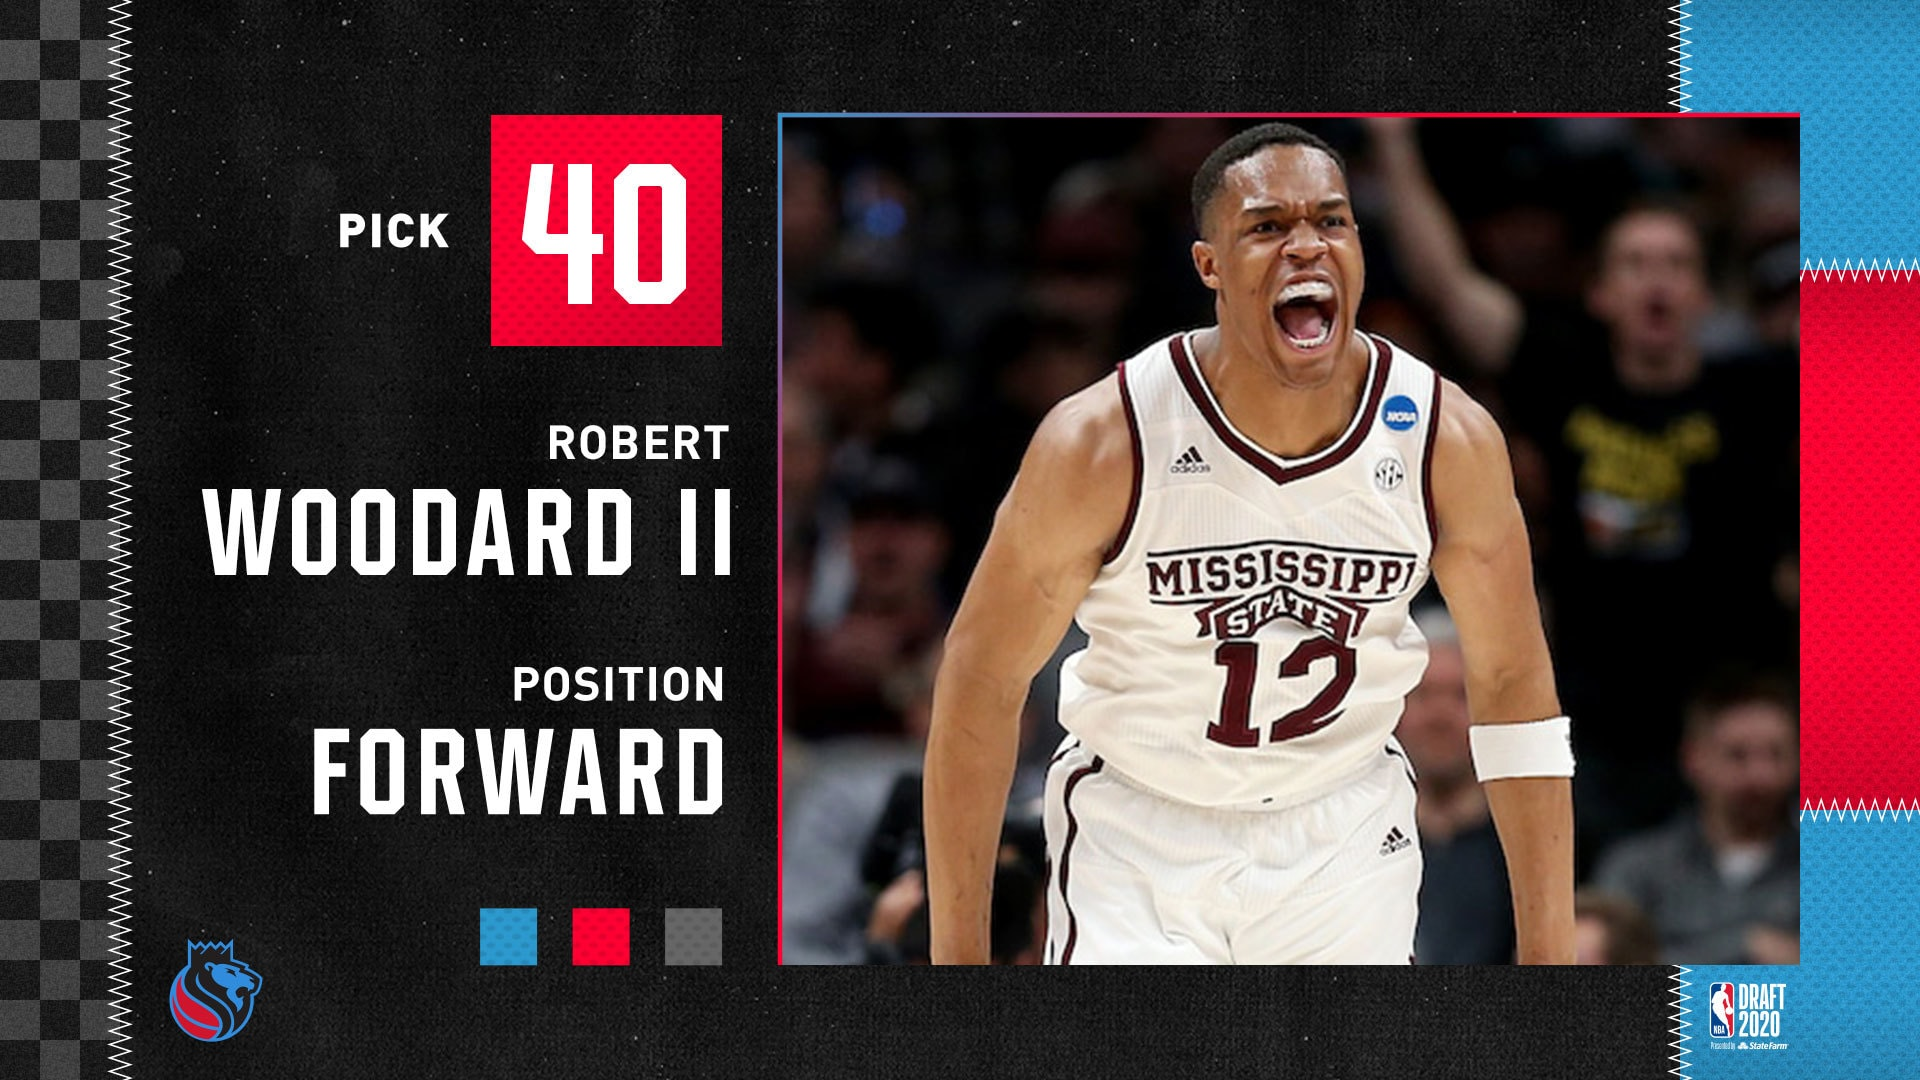 2020 NBA Draft | Kings Select Robert Woodard II at No. 40